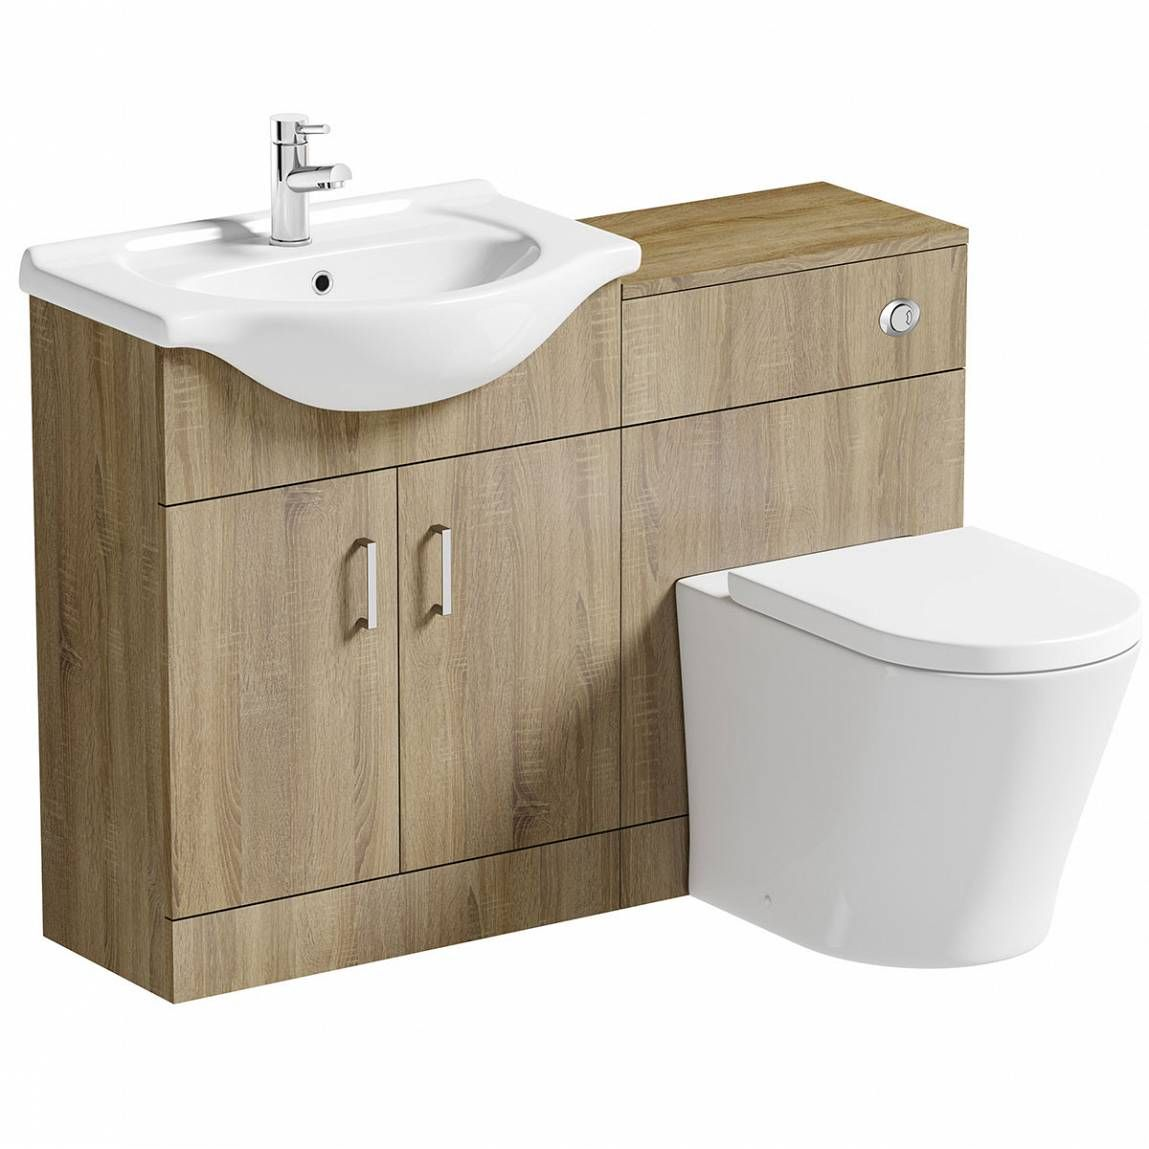 Sienna oak combination unit and arte back to wall toilet mm